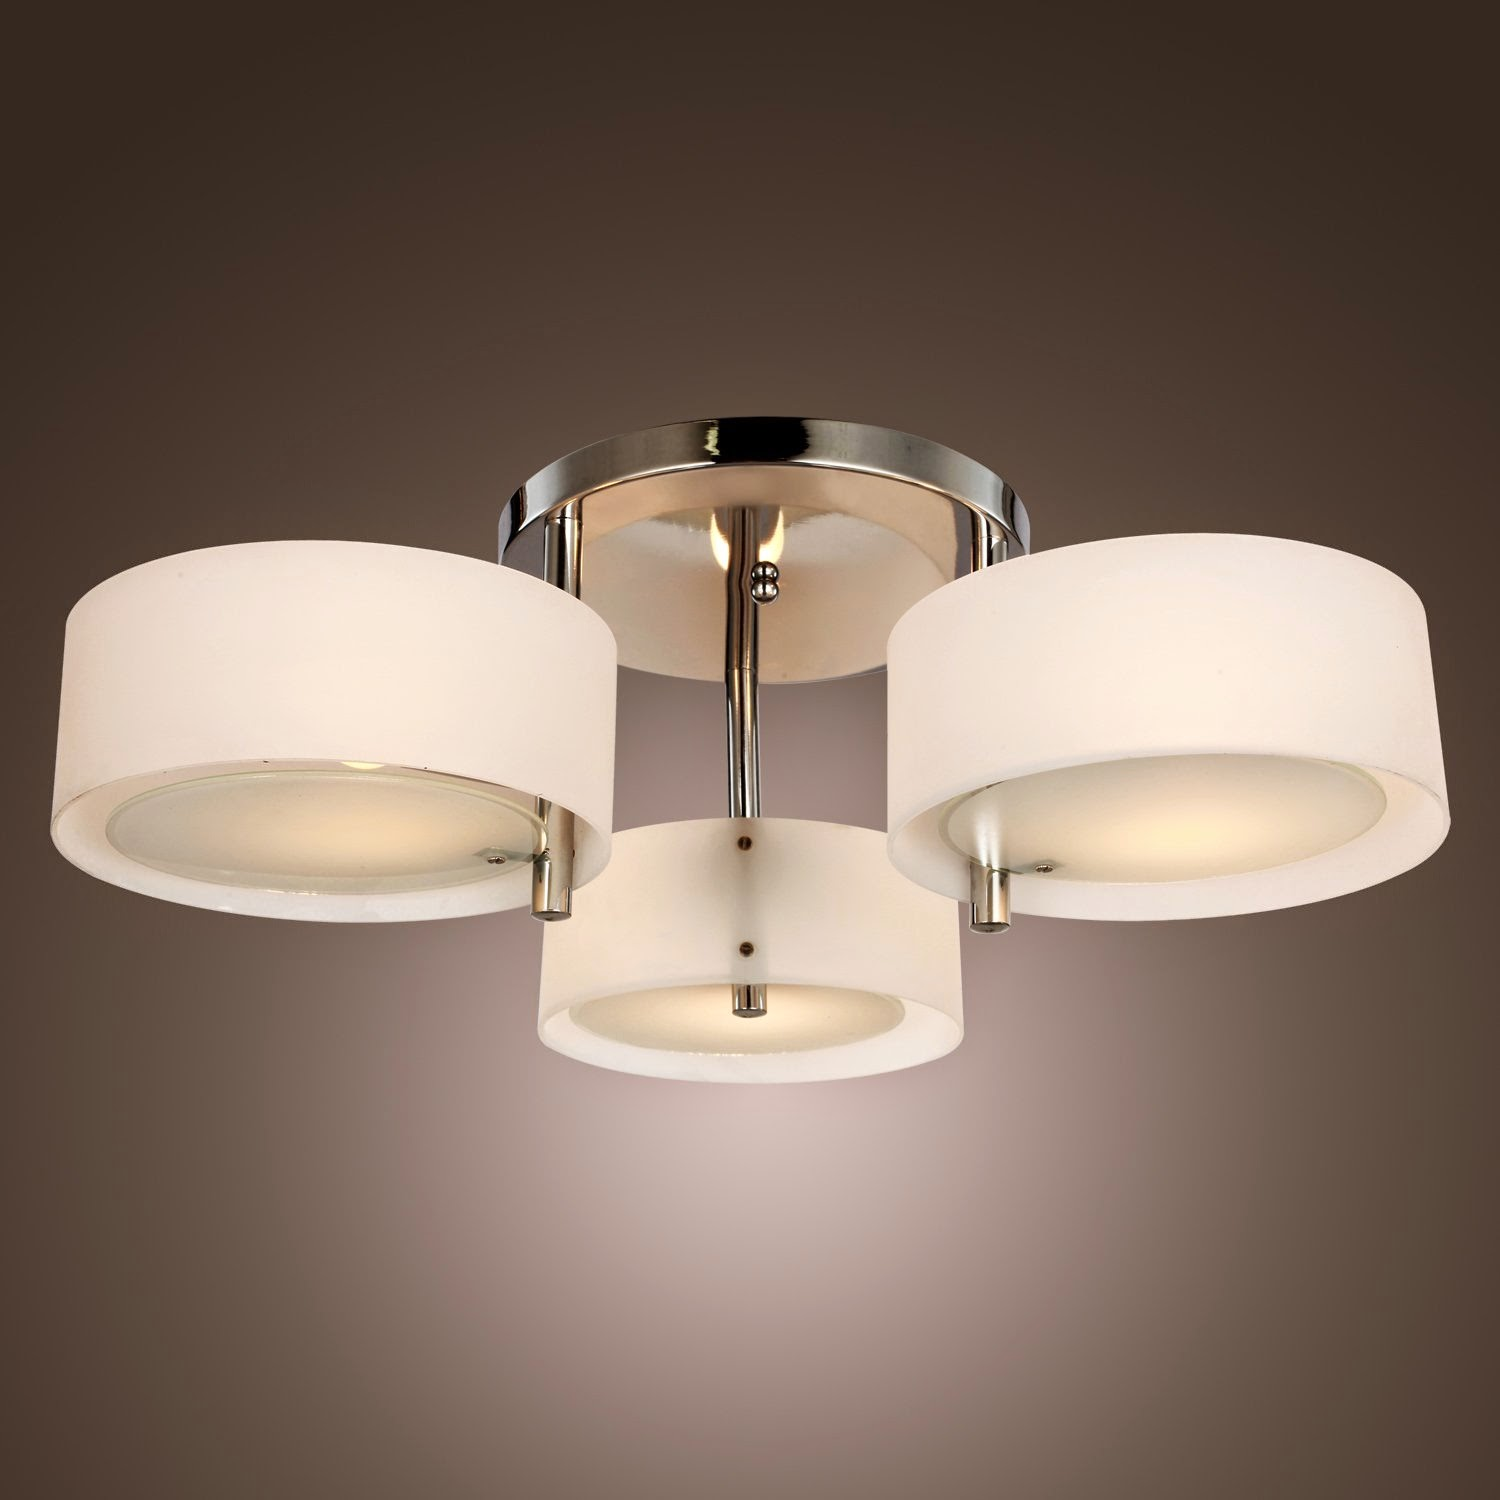 Light On Ceiling: Ceiling Light Fixture With Outlet